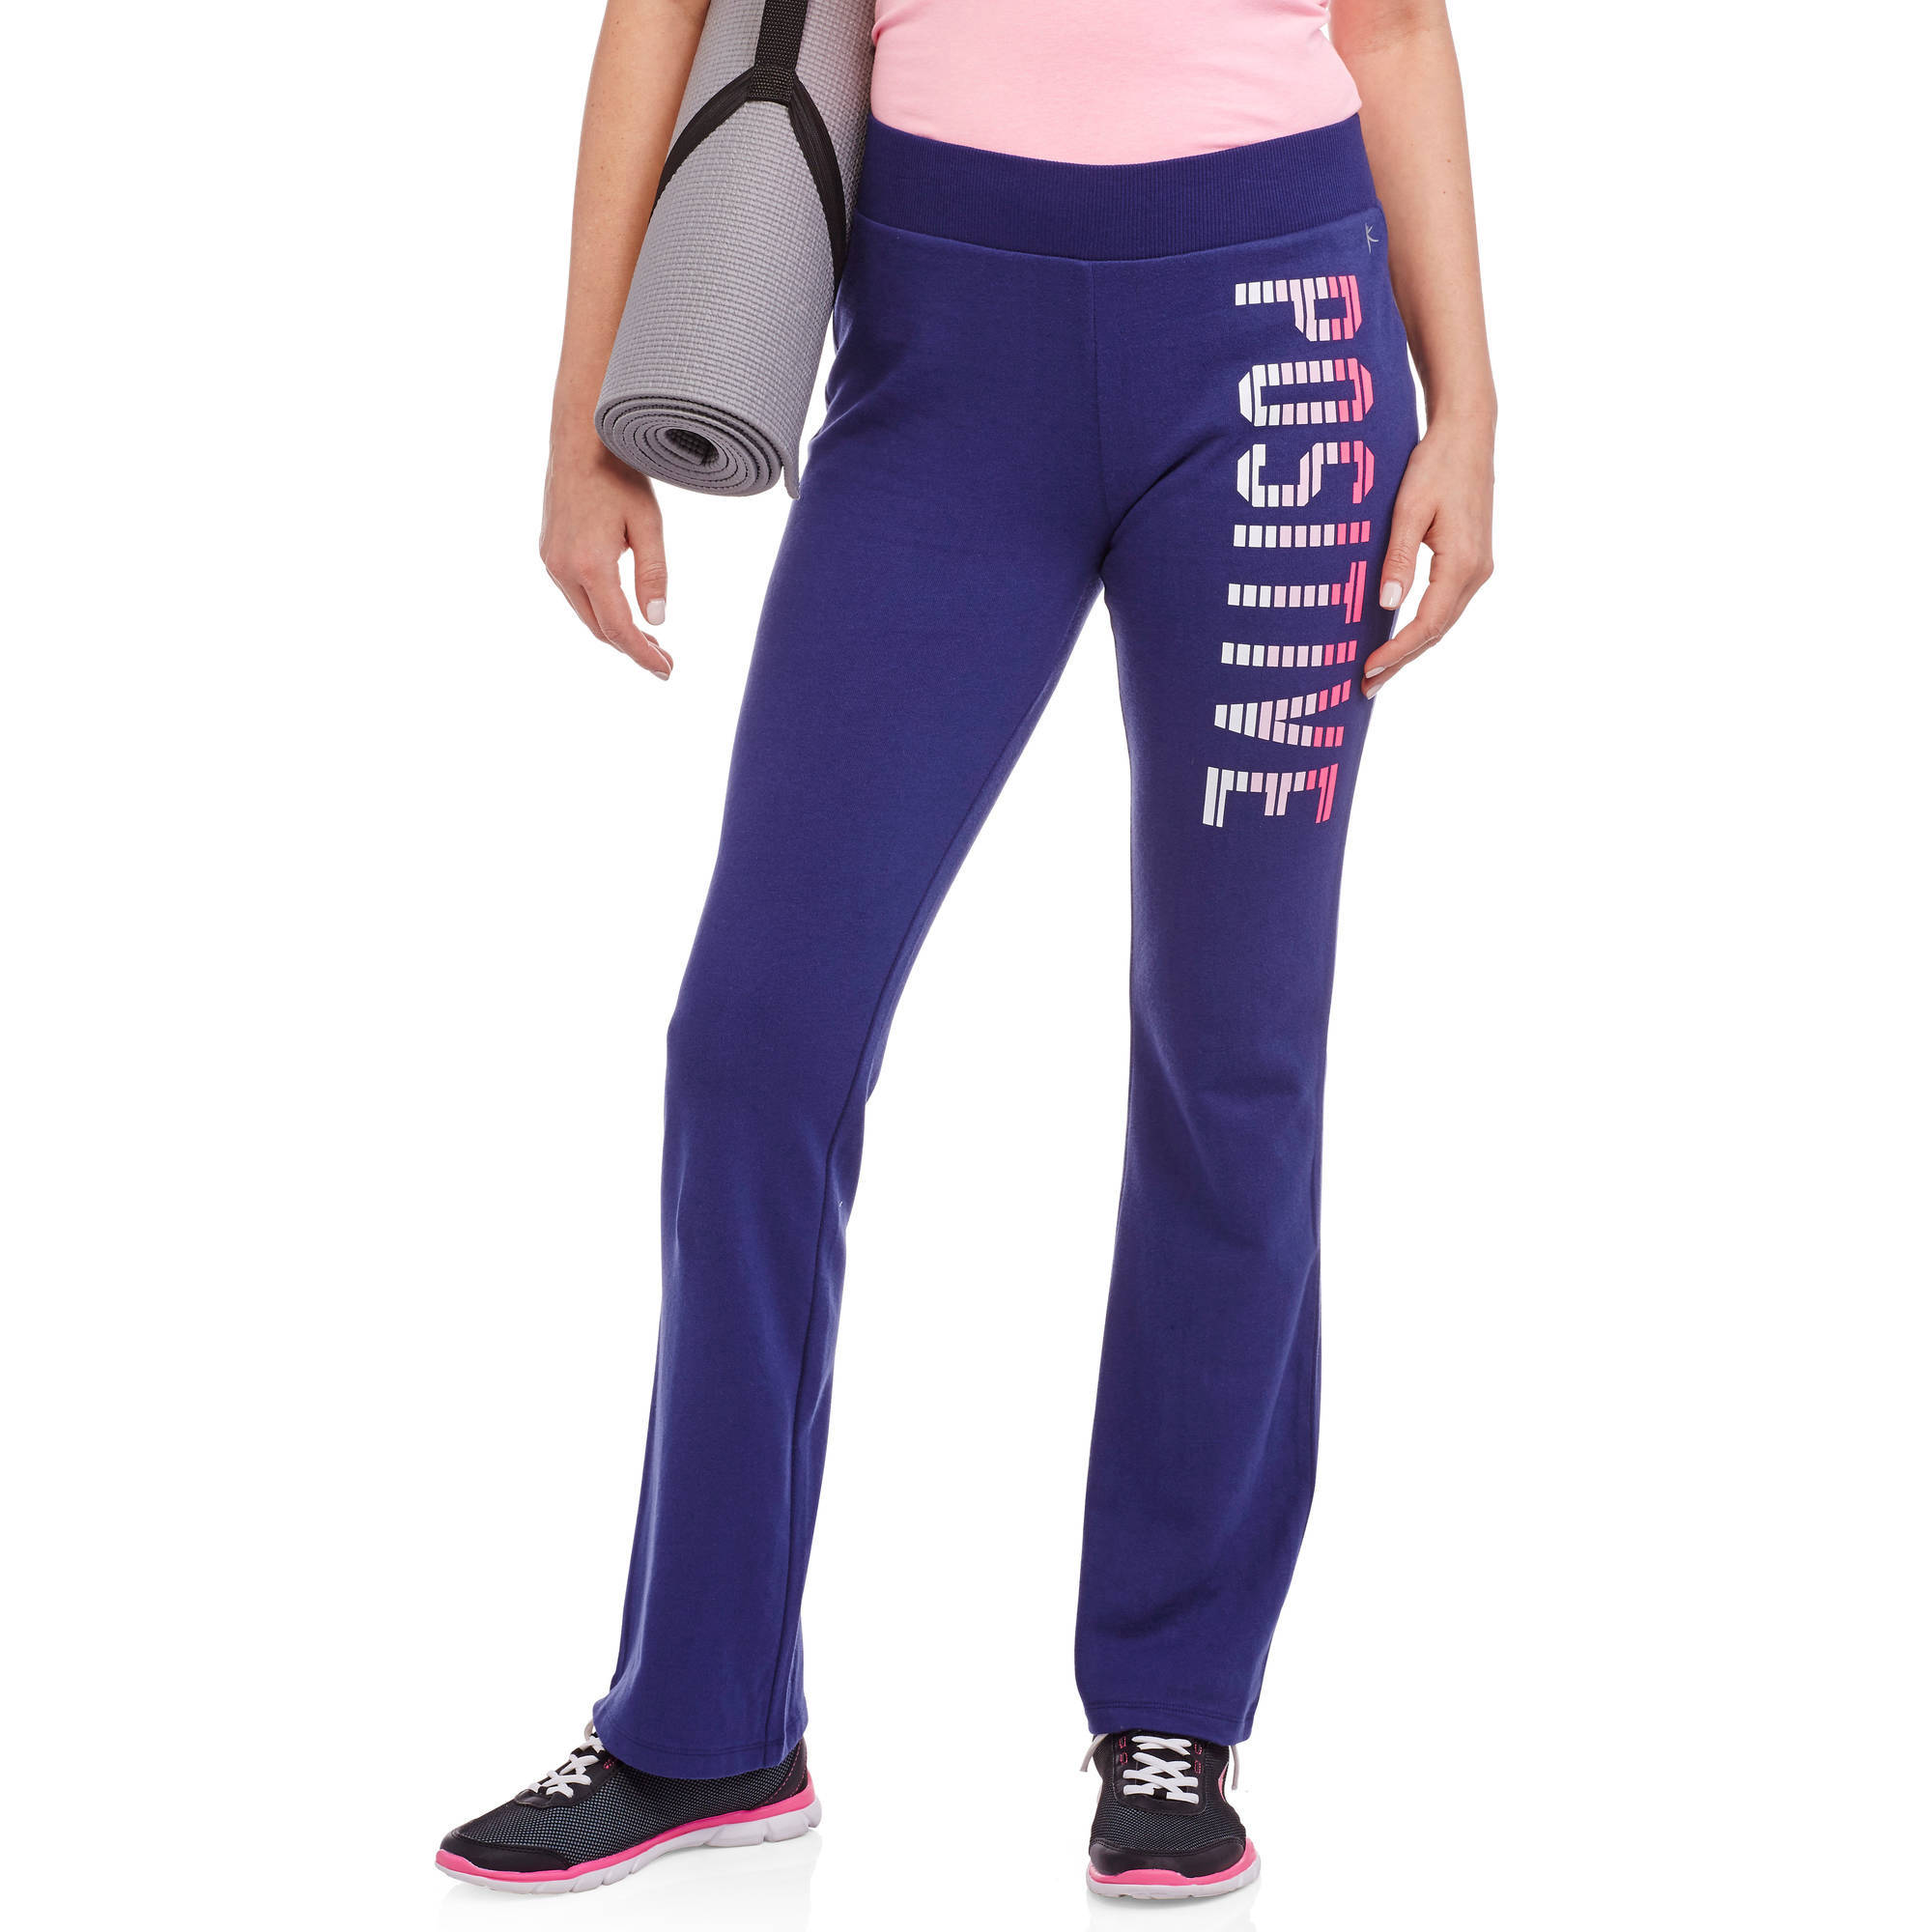 Danskin Now Women's Active Fitspiration French Terry Pants